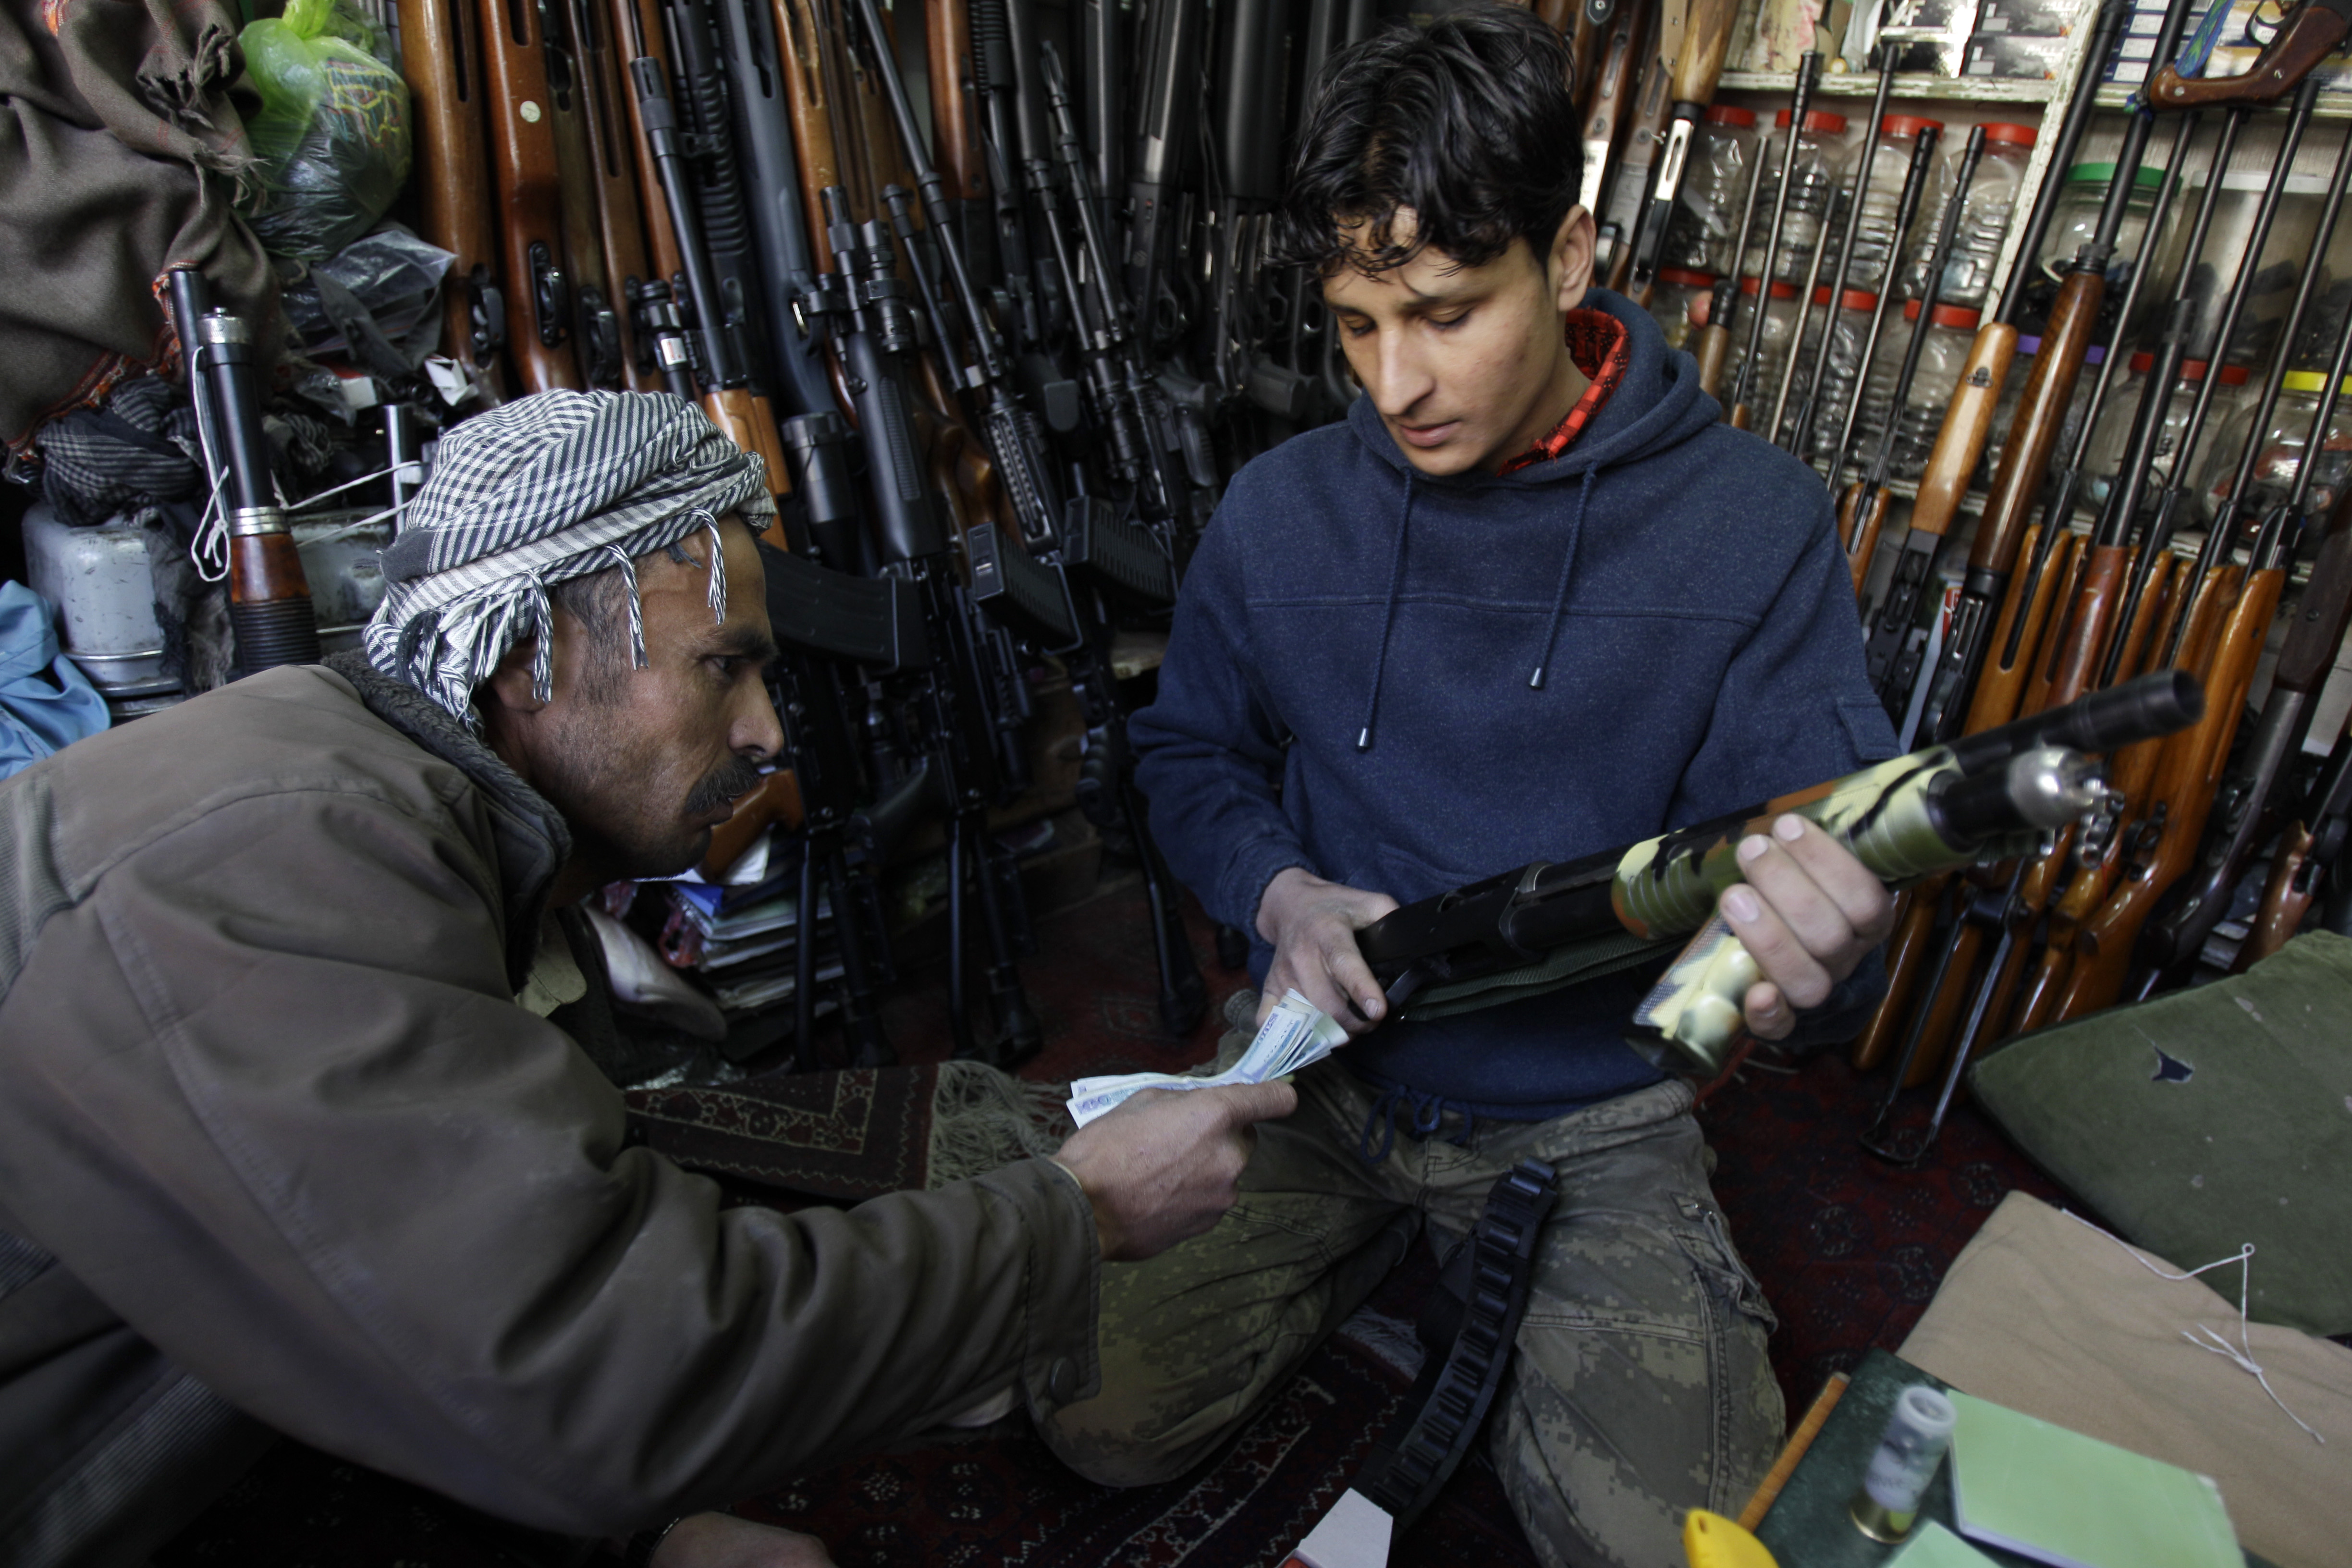 """Saeed Sarwar, left, buys a Pakistan made gun for about $ 110 (76 eur) to protect his family and home from attack by drug addicts in the """"Ghala Now"""" suburb in Kabul, Afghanistan, Tuesday April 12, 2011. (AP Photo/Kamran Jebreili)"""